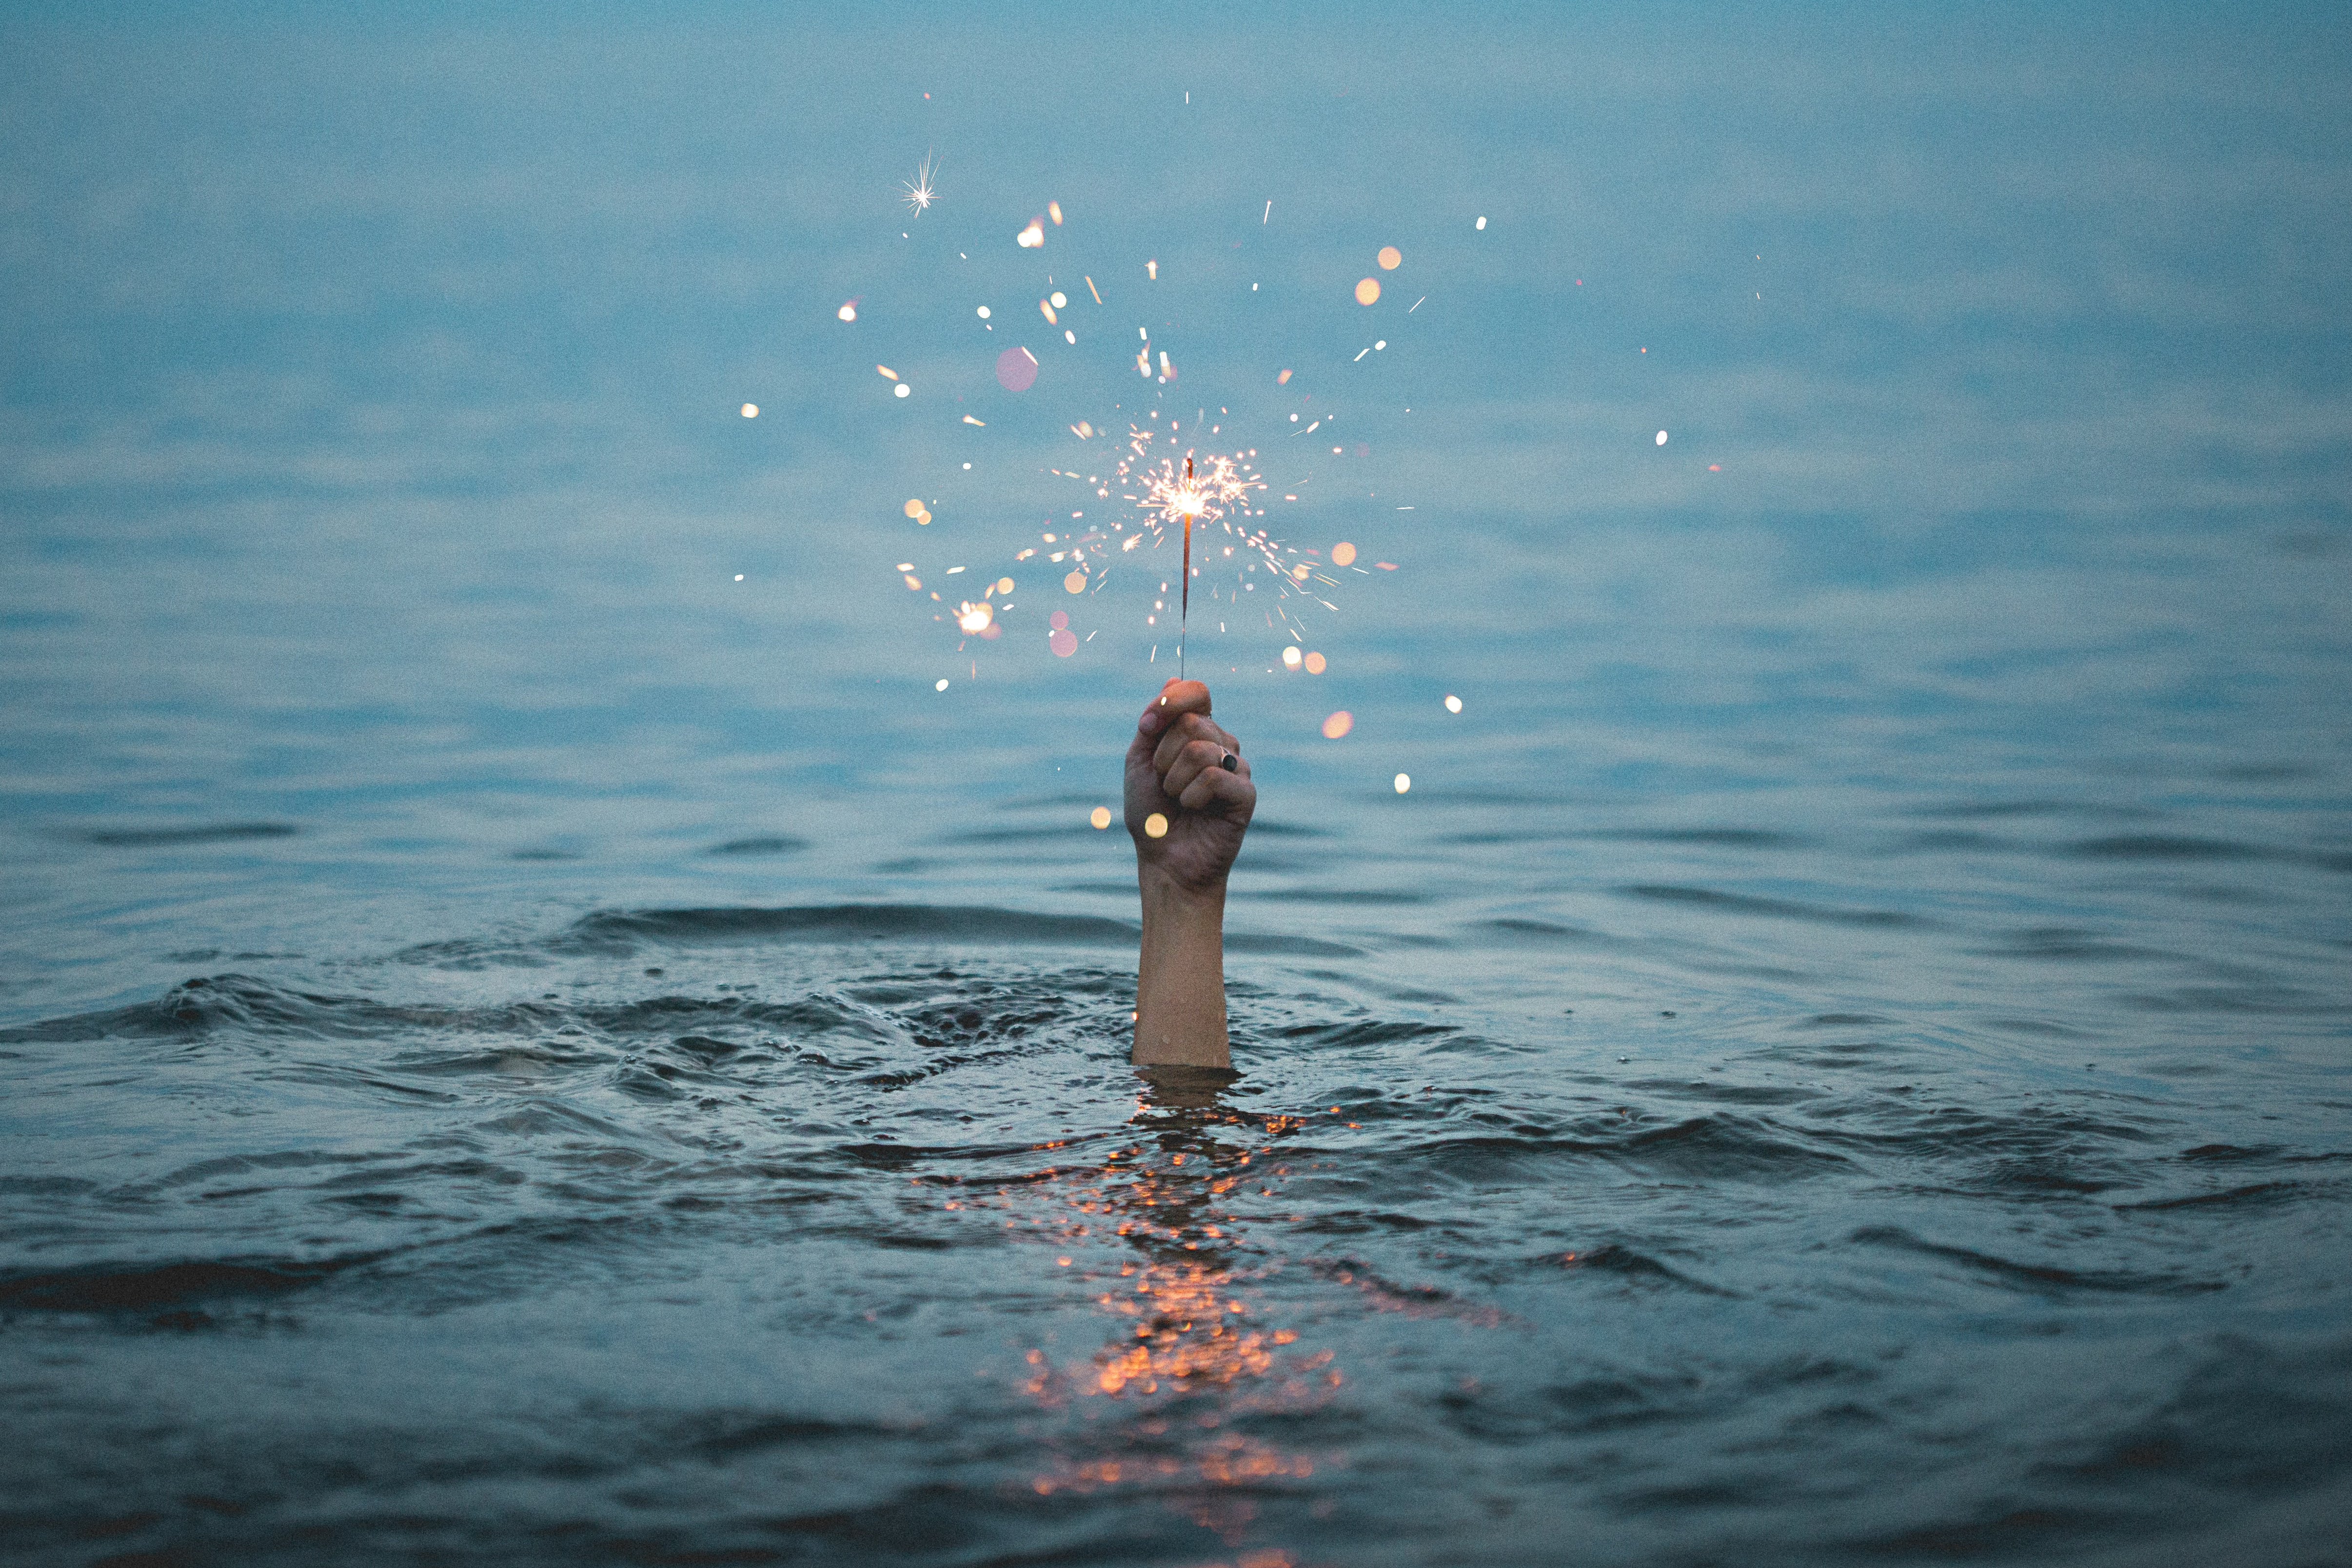 person submerged in body of water holding sparkler